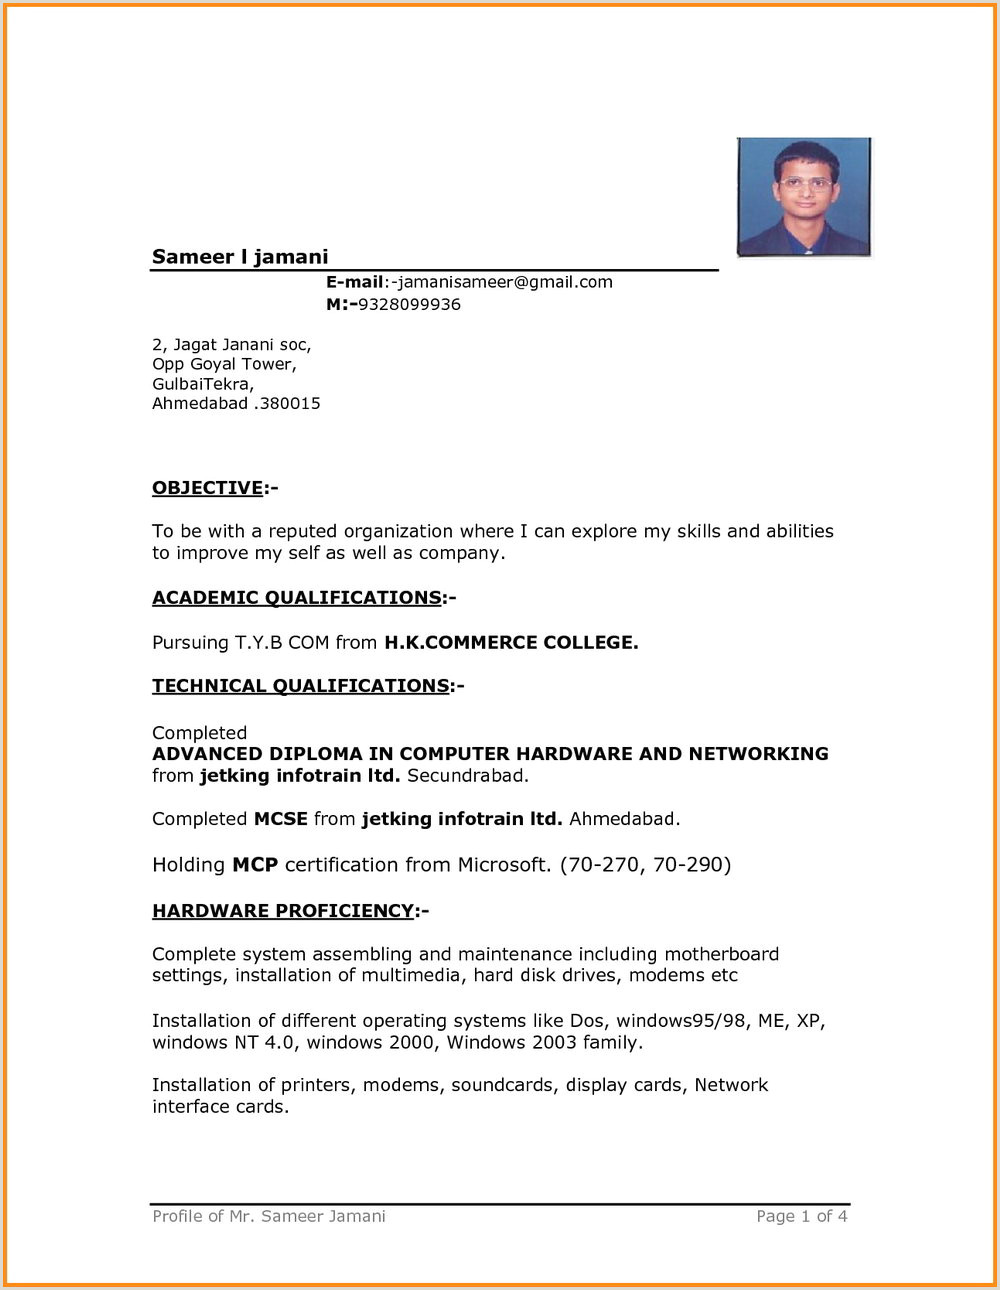 Bca Fresher Resume format In Word 10 Simple Resume formats for Freshers